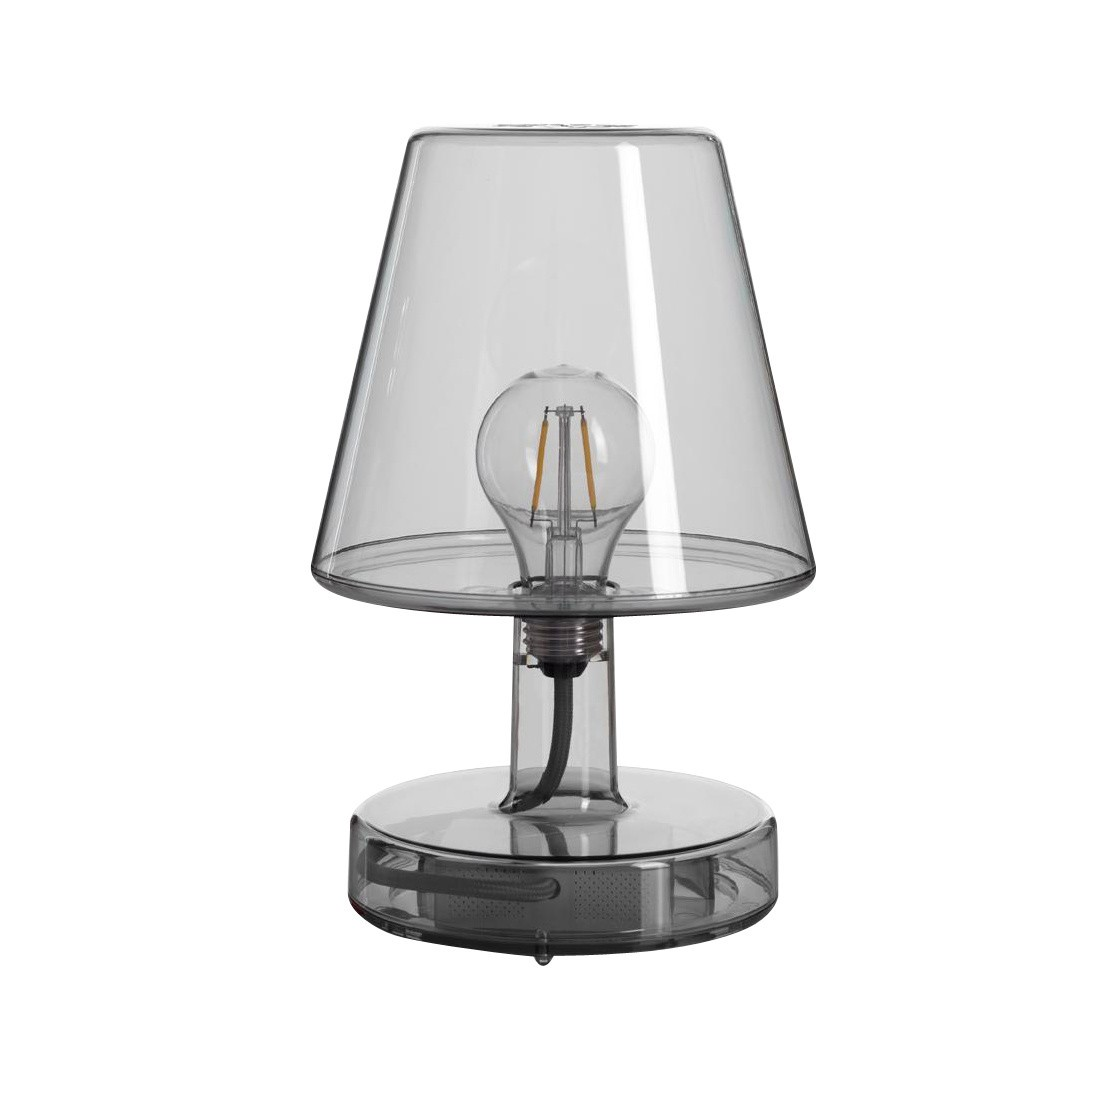 Fatboy lamps ... fatboy - fatboy transloetje led table light with accu - grey/2700k/accu  duration ... NIEXQNY